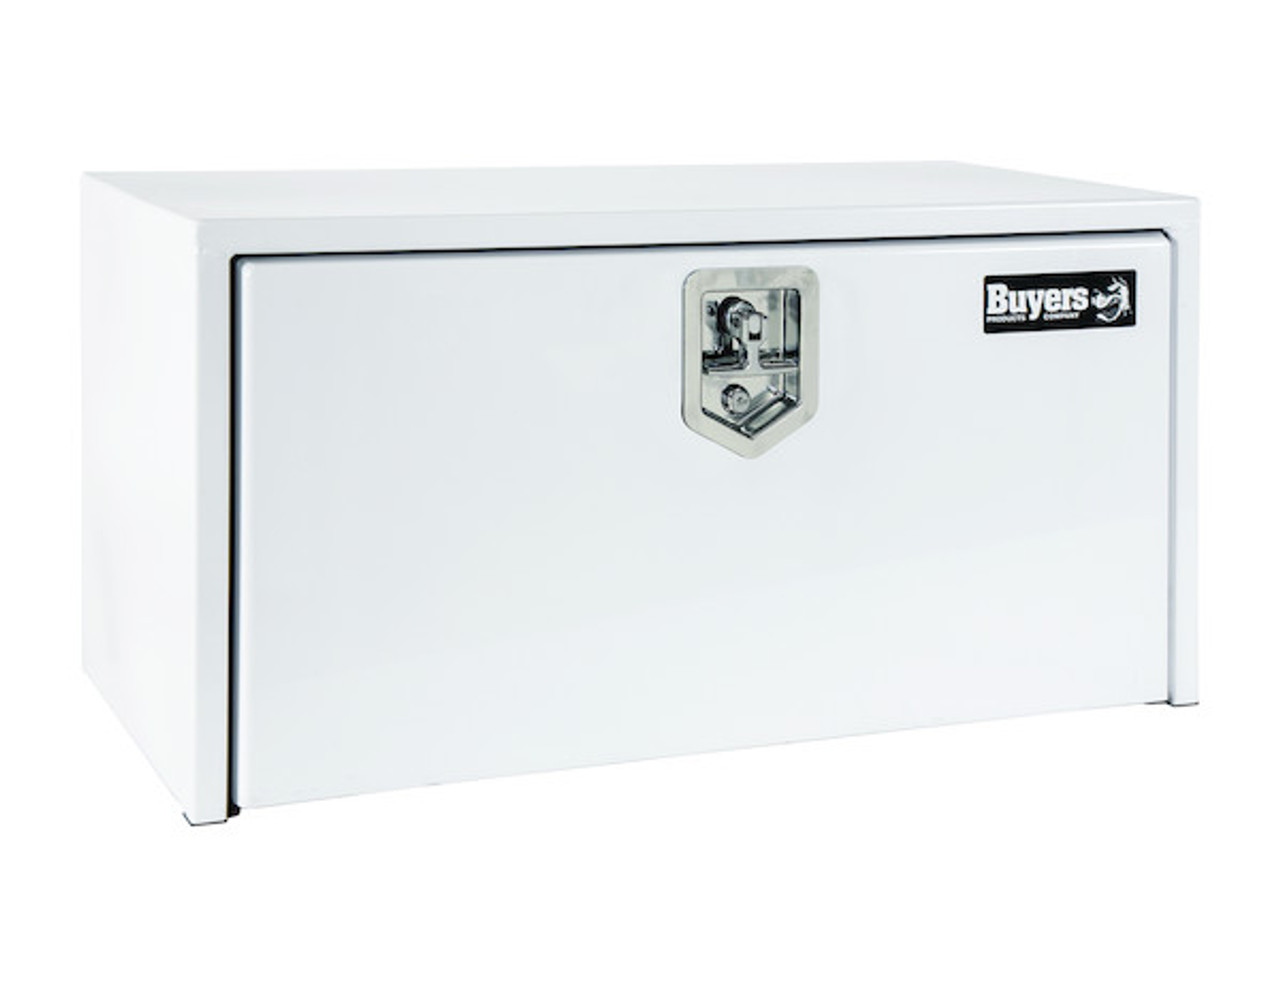 "1703400 BUYERS PRODUCTS WHITE STEEL UNDERBODY TRUCK TOOLBOX 14""HX16""DX24""W"